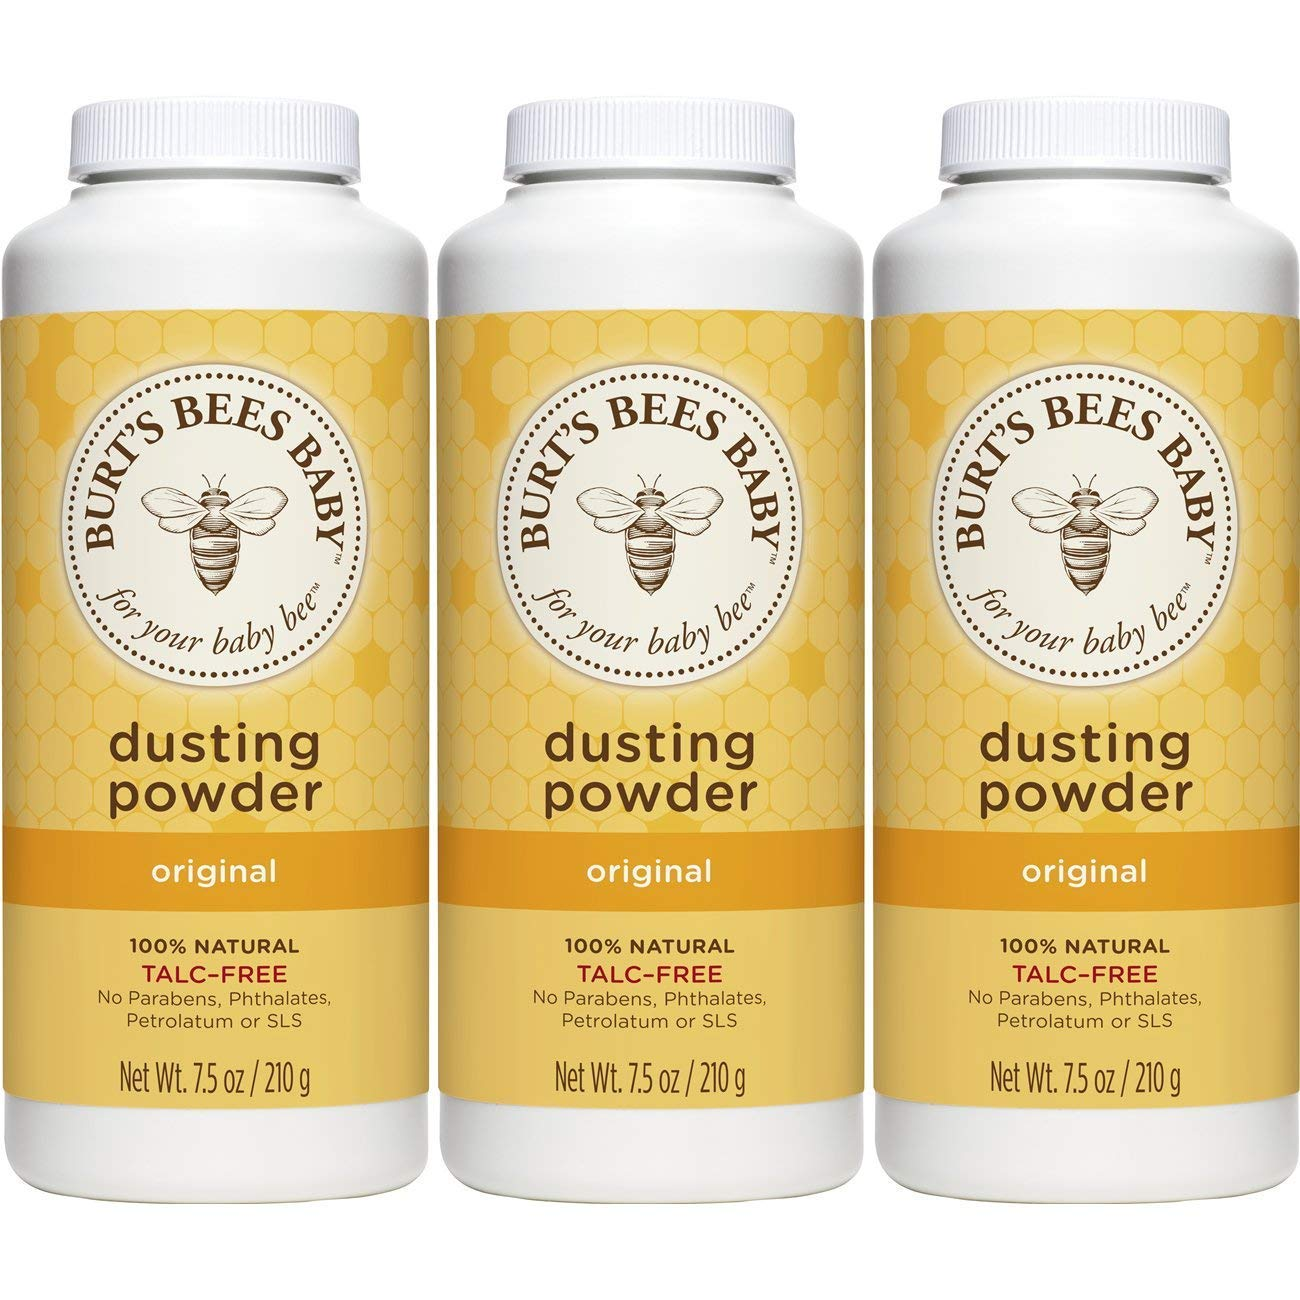 Burt's Bees baby 100% natural dusting powder, 7.5 ounces (pack of 3), 22.5 Ounce by Burt's Bees Baby